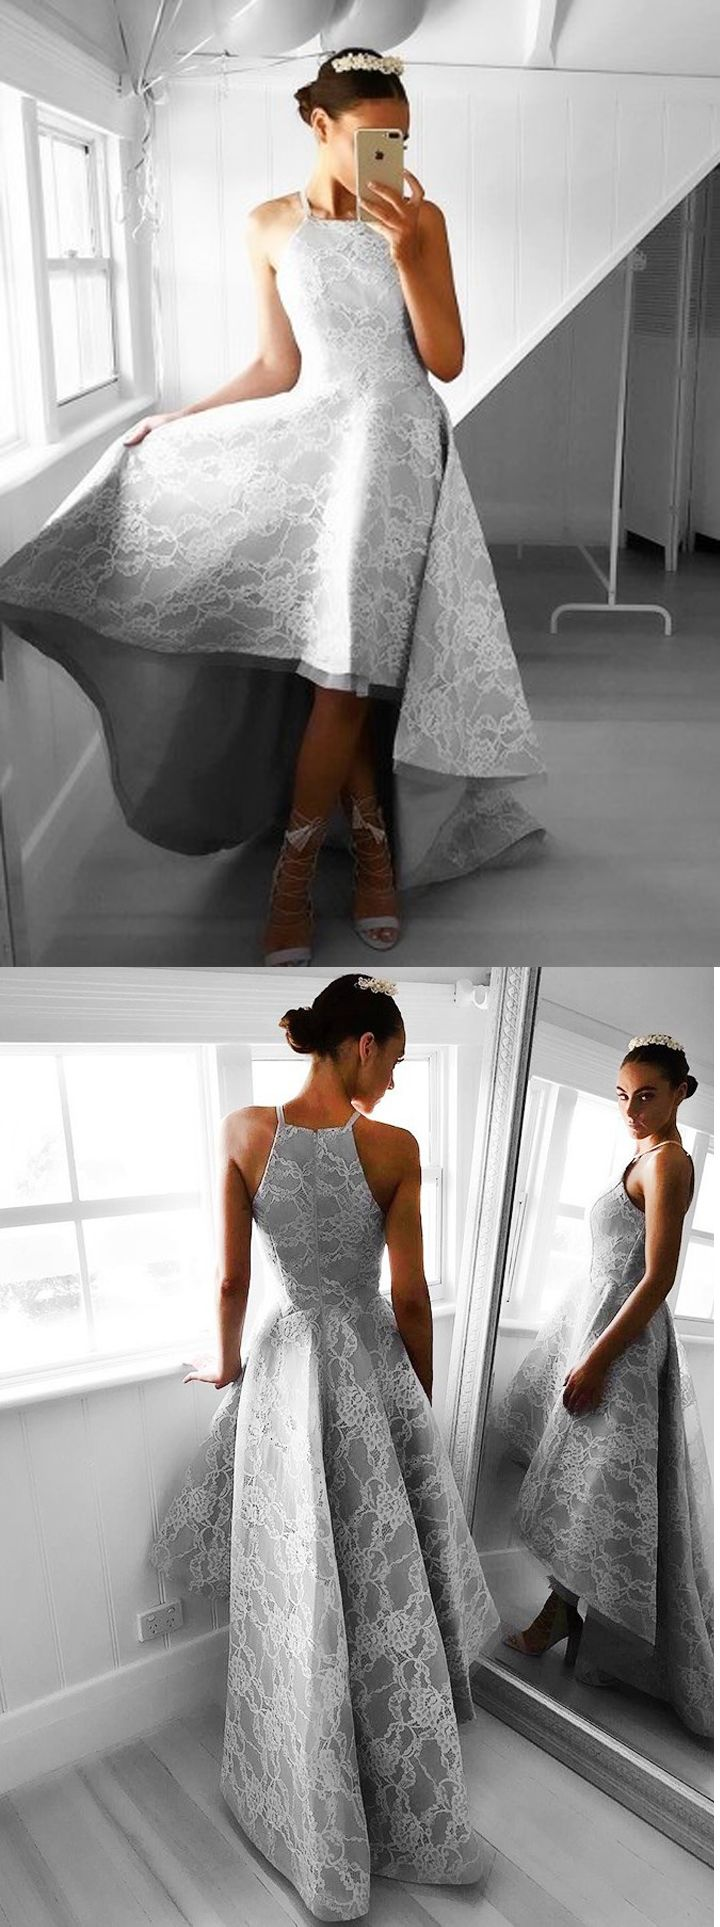 L07 A-line Halter Prom Dress,Grey Satin Evening Dress,Asymmetry Sleeveless Prom/Homecoming Dress with Lace,Appliques Formal Dress,Chic New Arrival Prom Gown,Prom Dresses